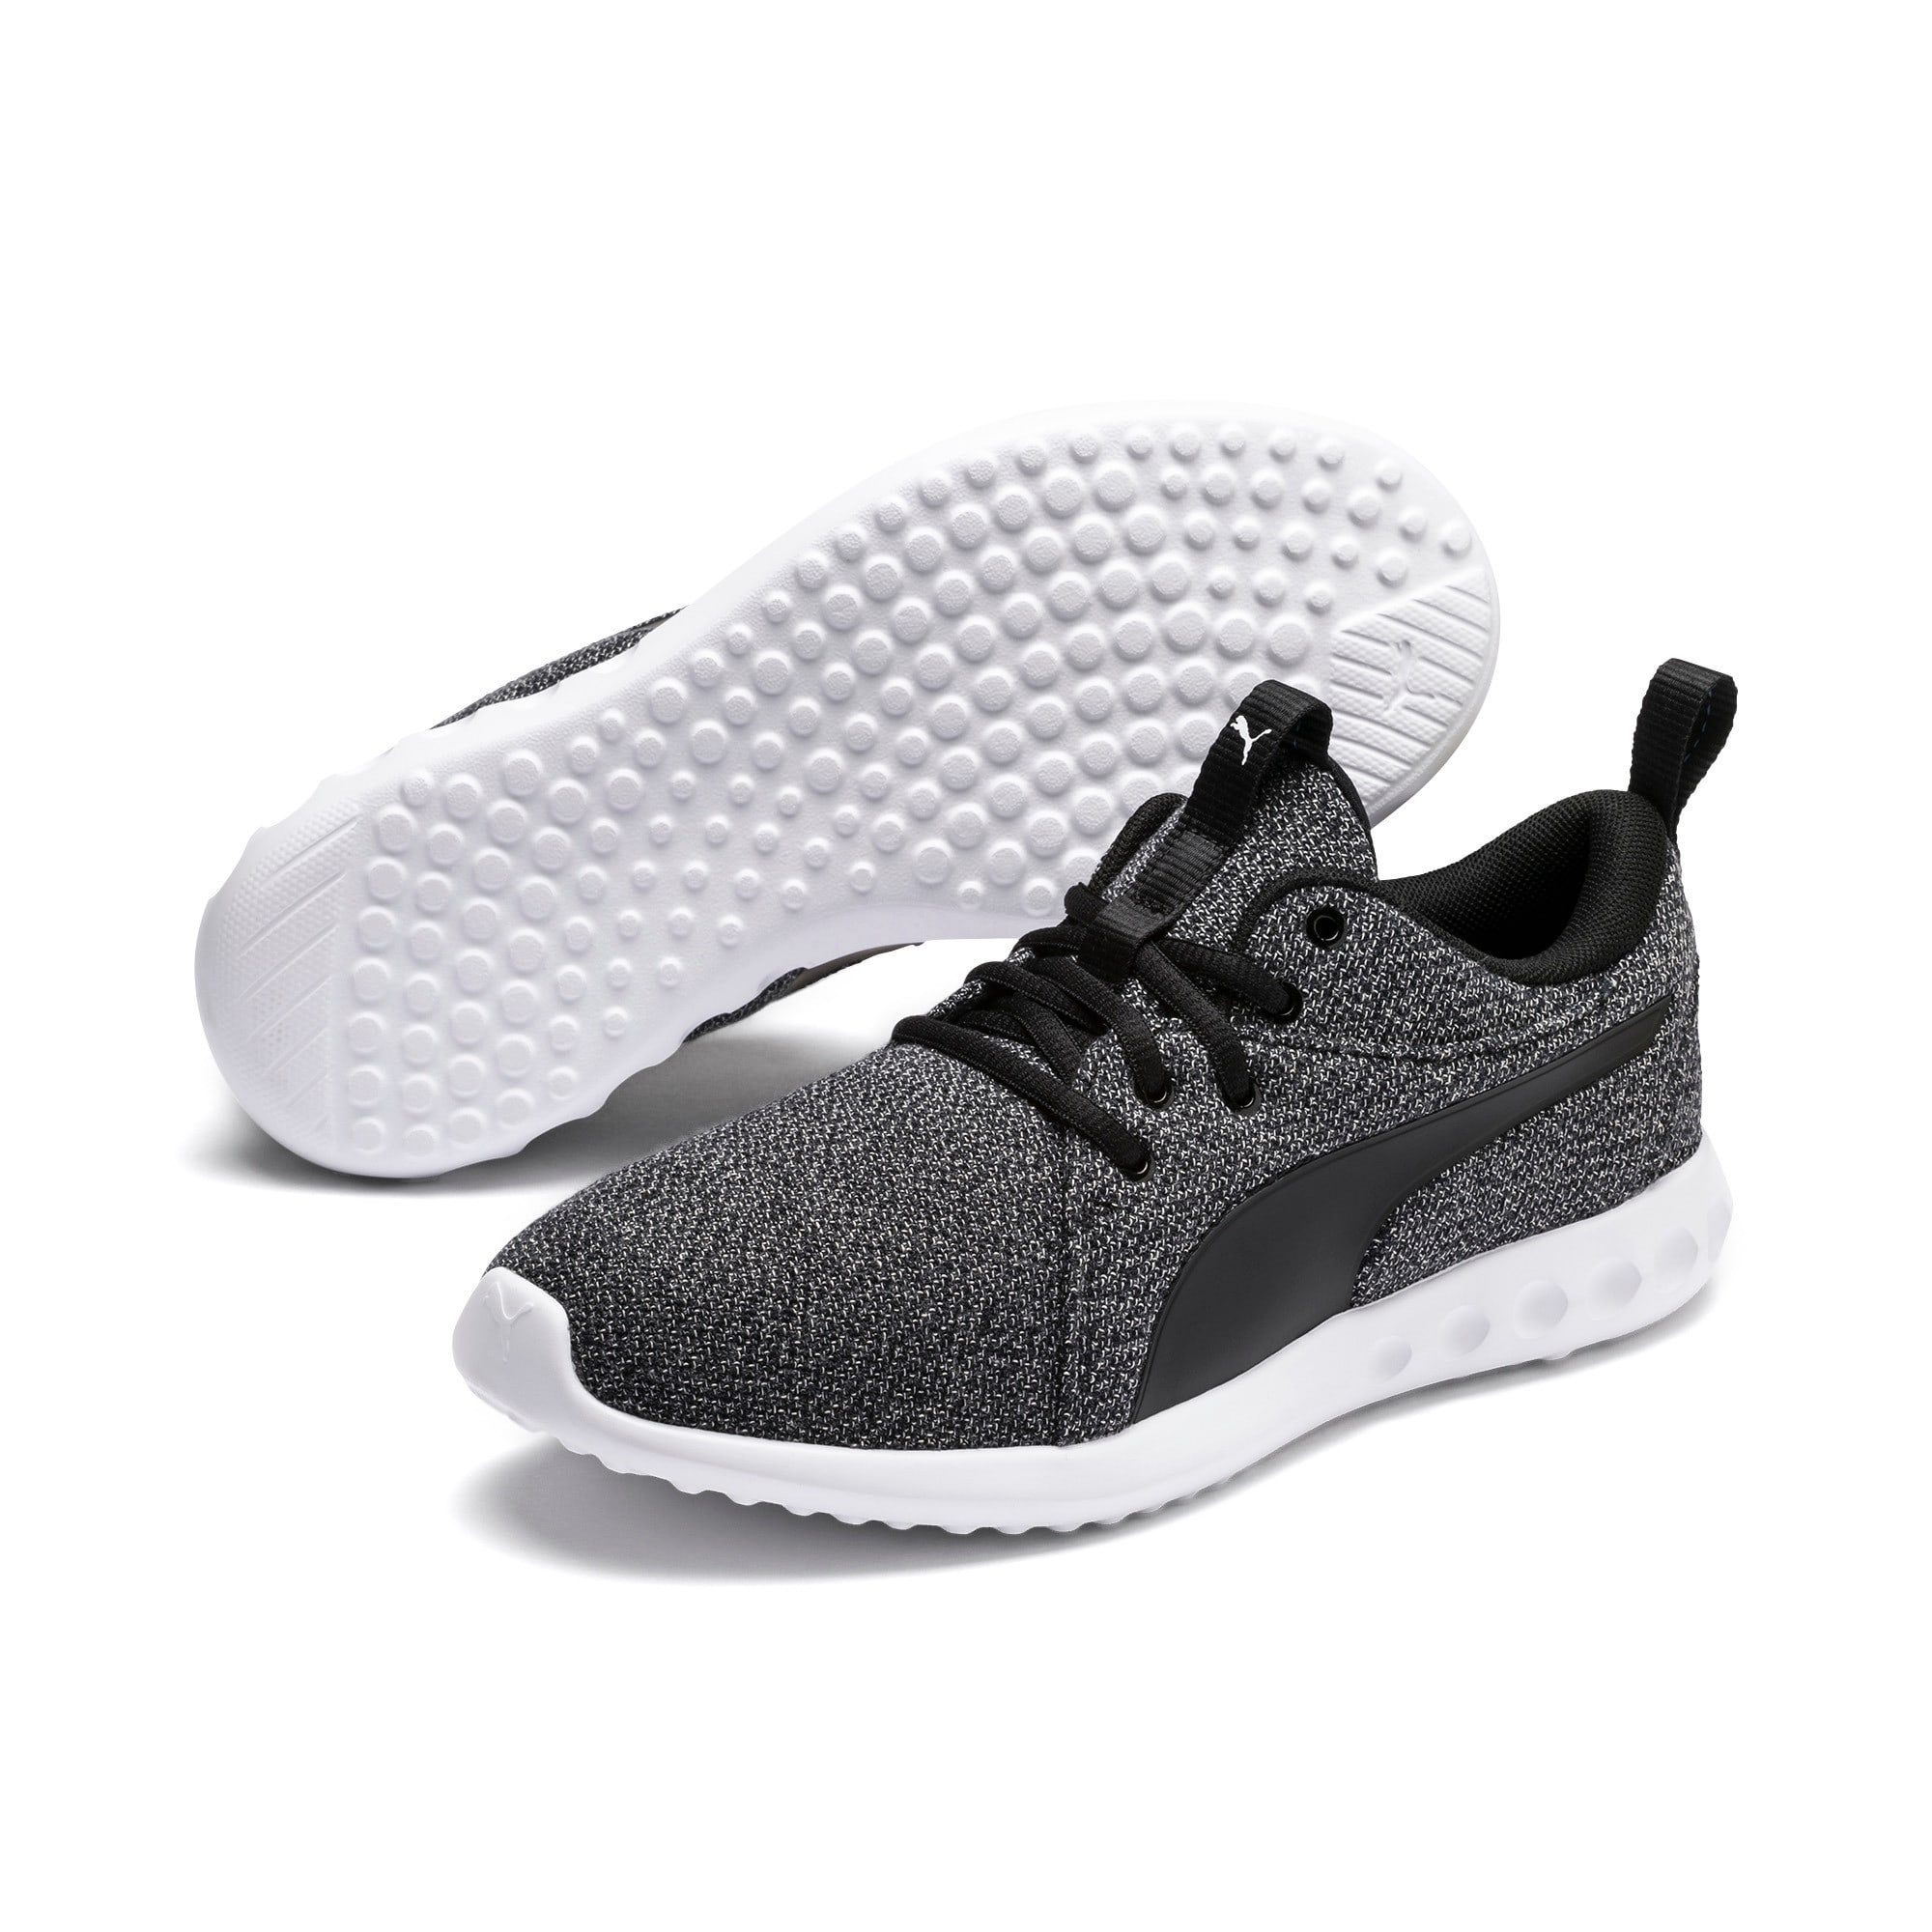 Thumbnail 2 of Carson 2 Knit Damen Sneaker, Puma Black-Puma White, medium